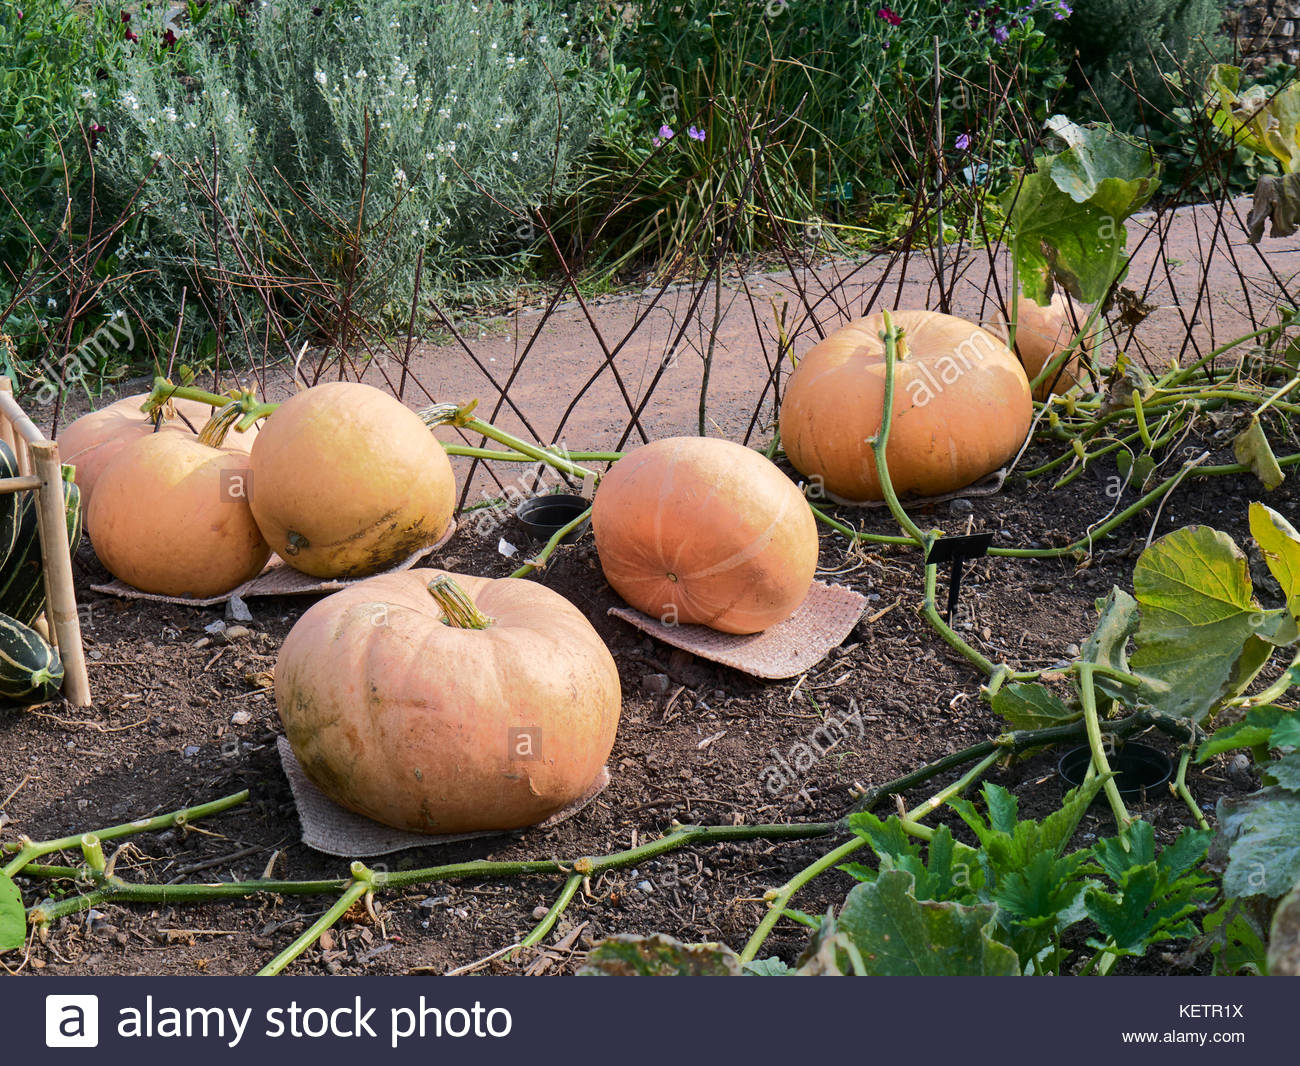 Large fruit pumpkins growing in a garden allotments in the uk - Stock Image